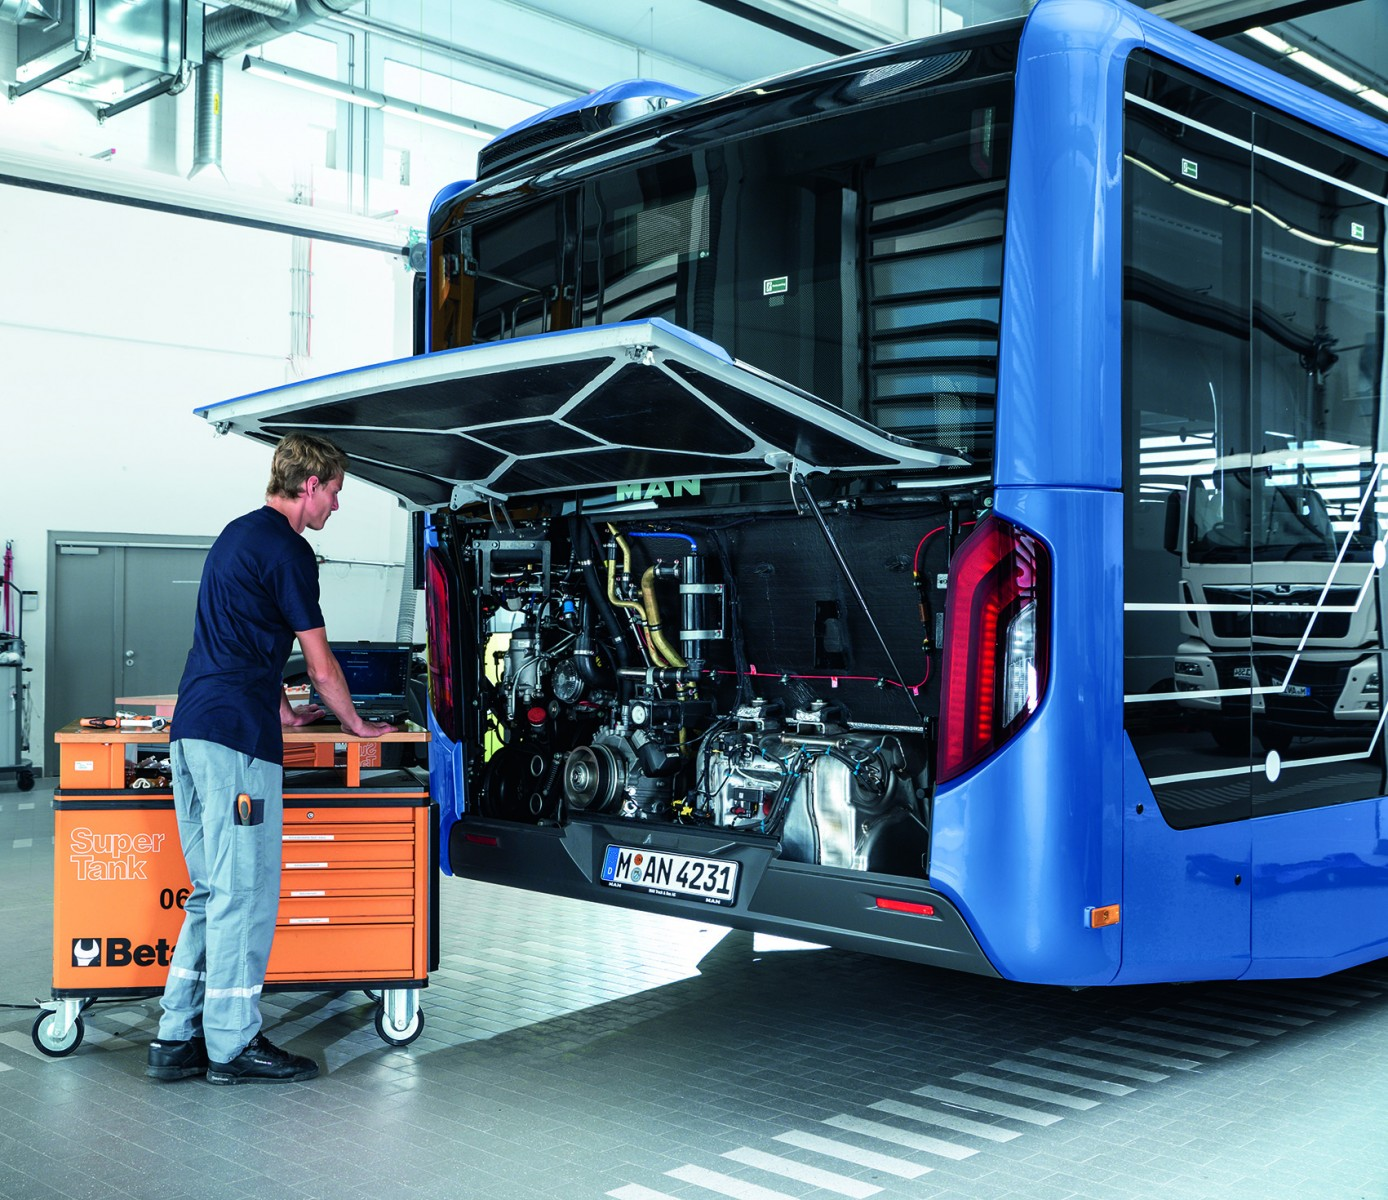 P_Bus_Busworld2019_BusTopService